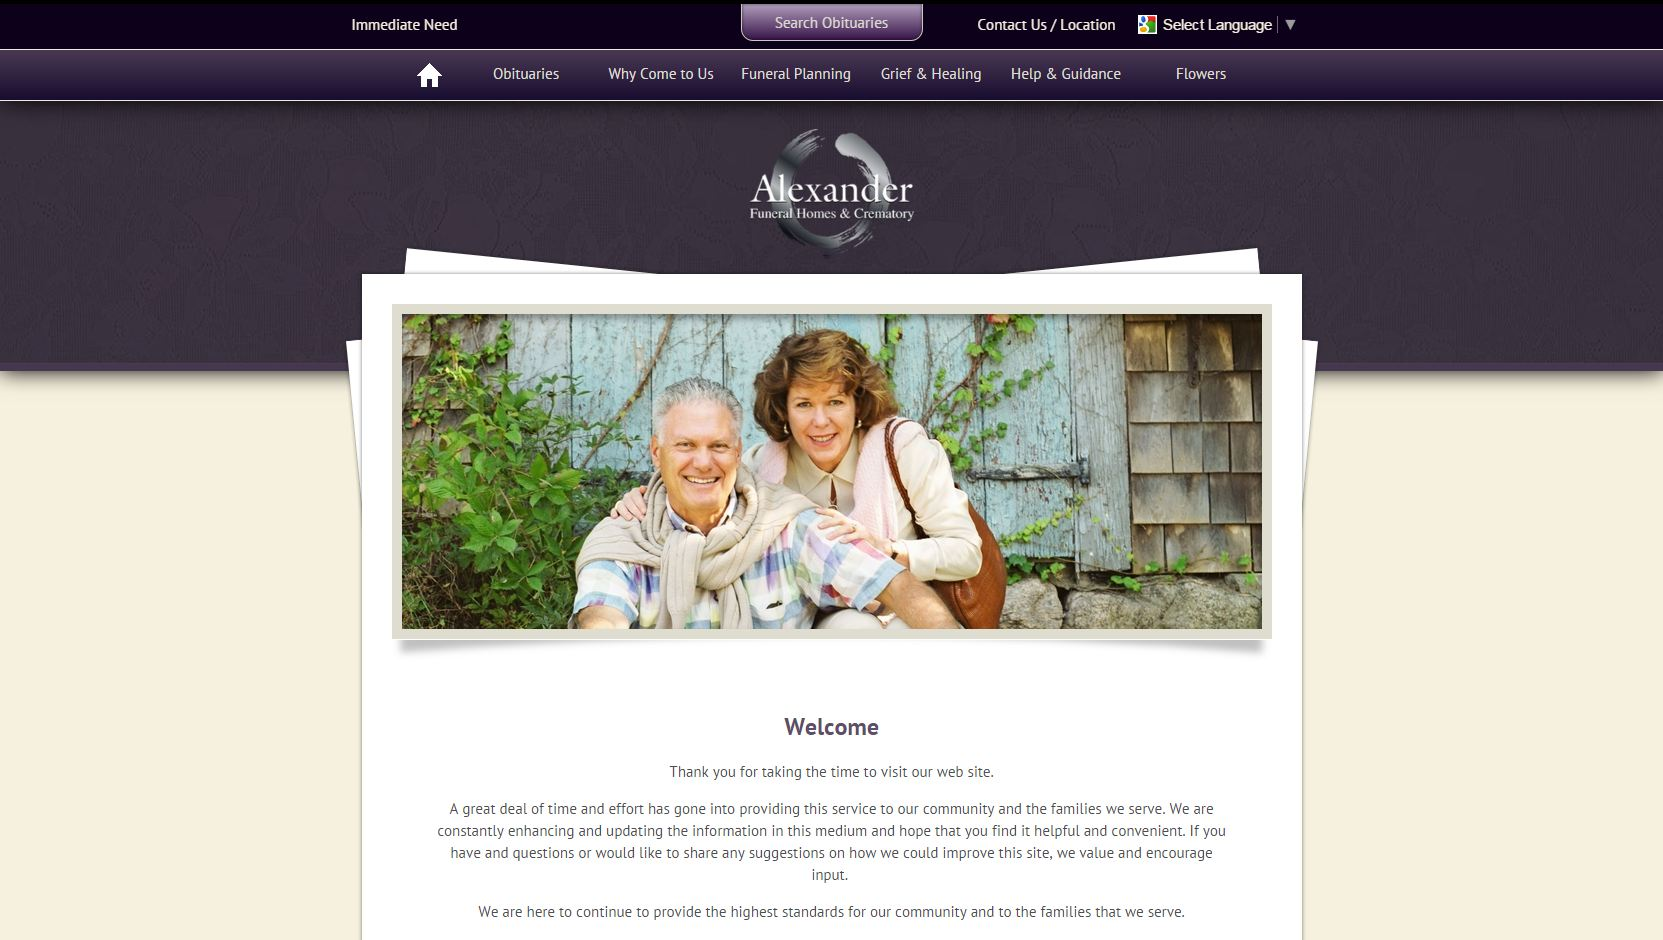 Alexander Funeral Homes Uses One Of FrontRunneru0027s Modern Designs Which  Features A Simple Eye Catching Layout And A Larger Obituary Slider.